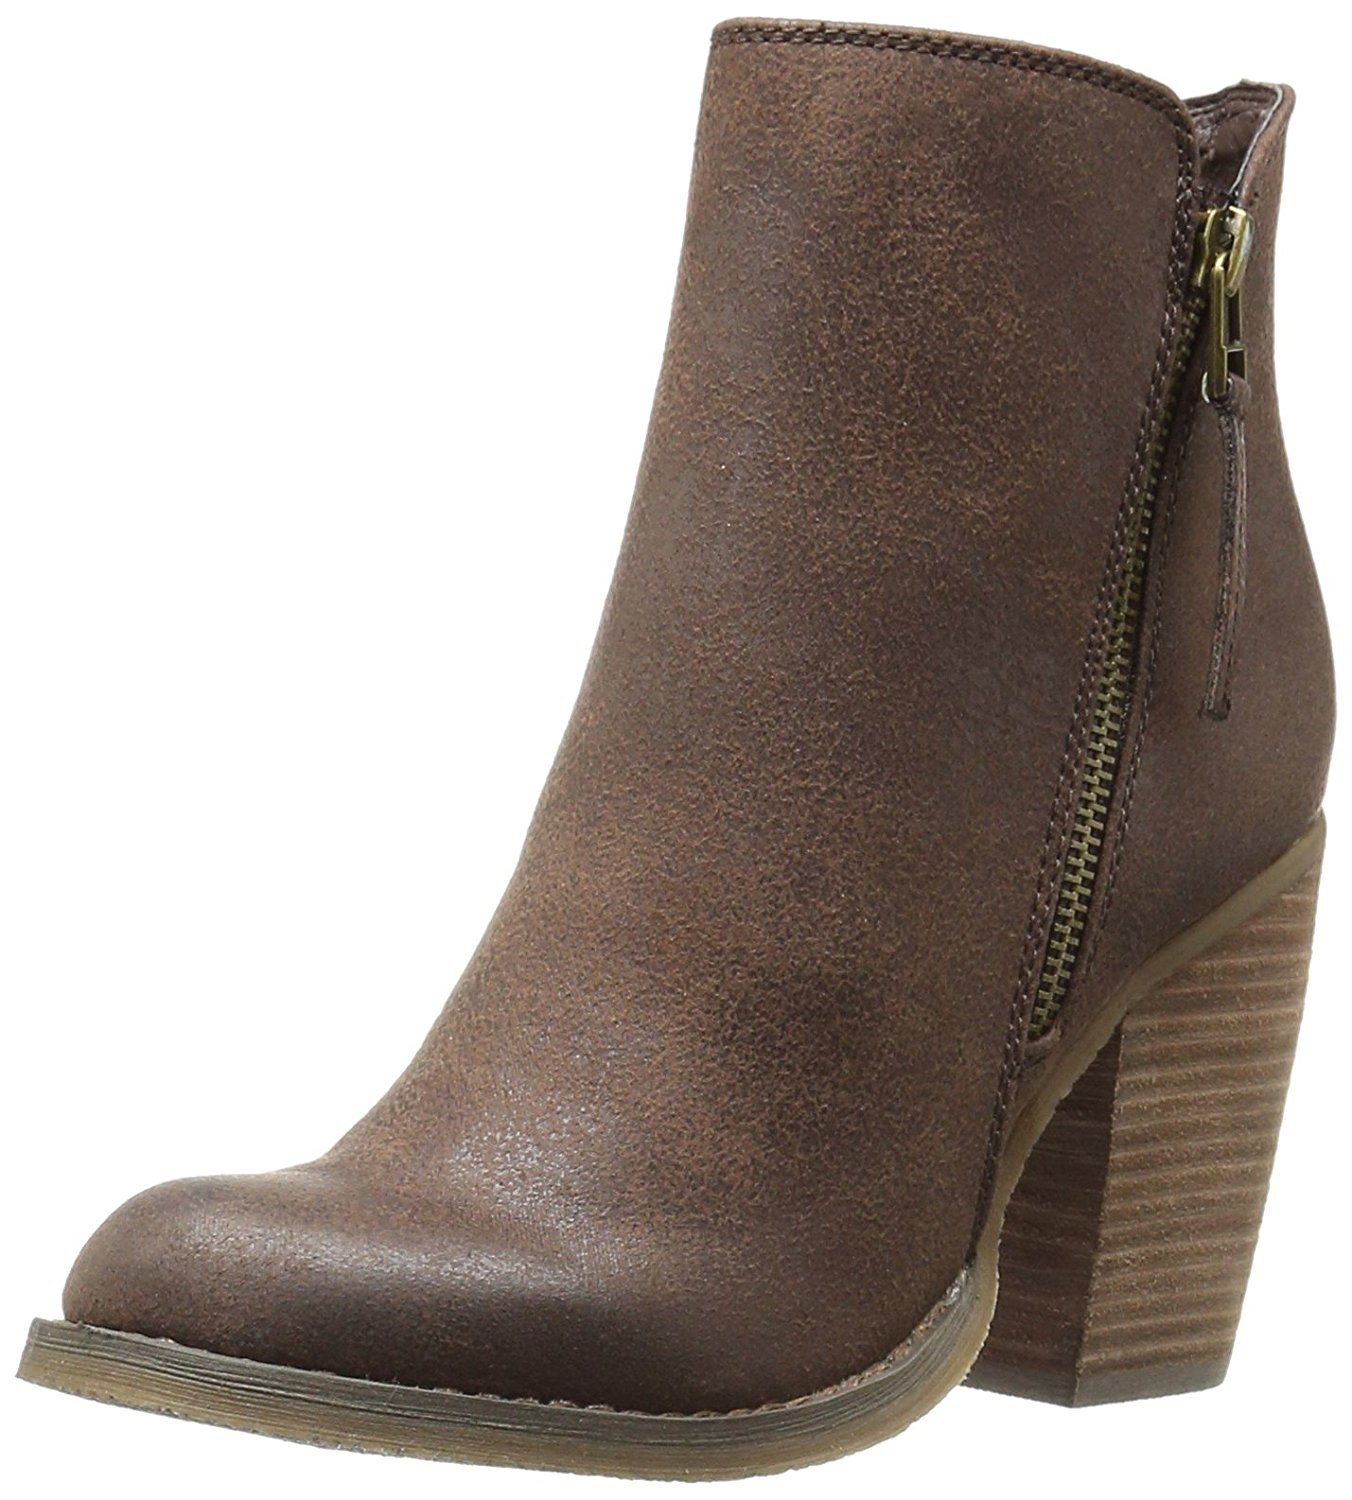 Sbicca Women's Percussion Boot, Brown, Size 8.0